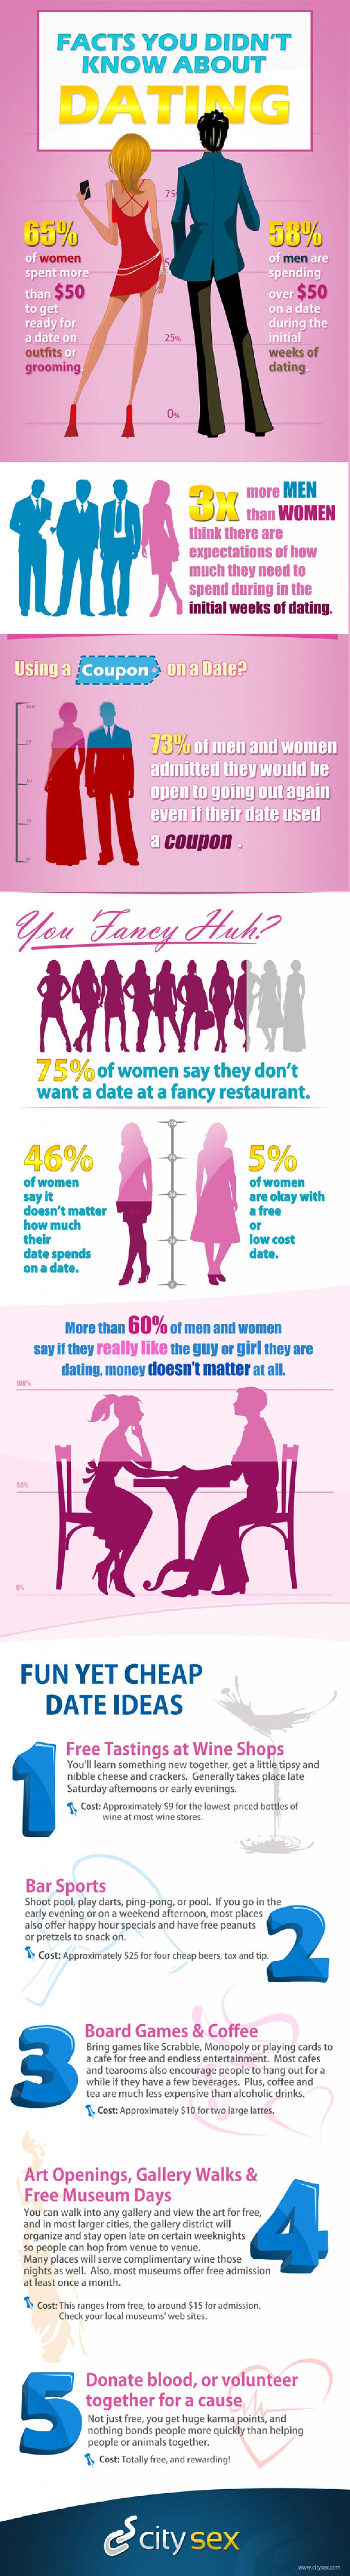 Dating Facts You Didn't Know